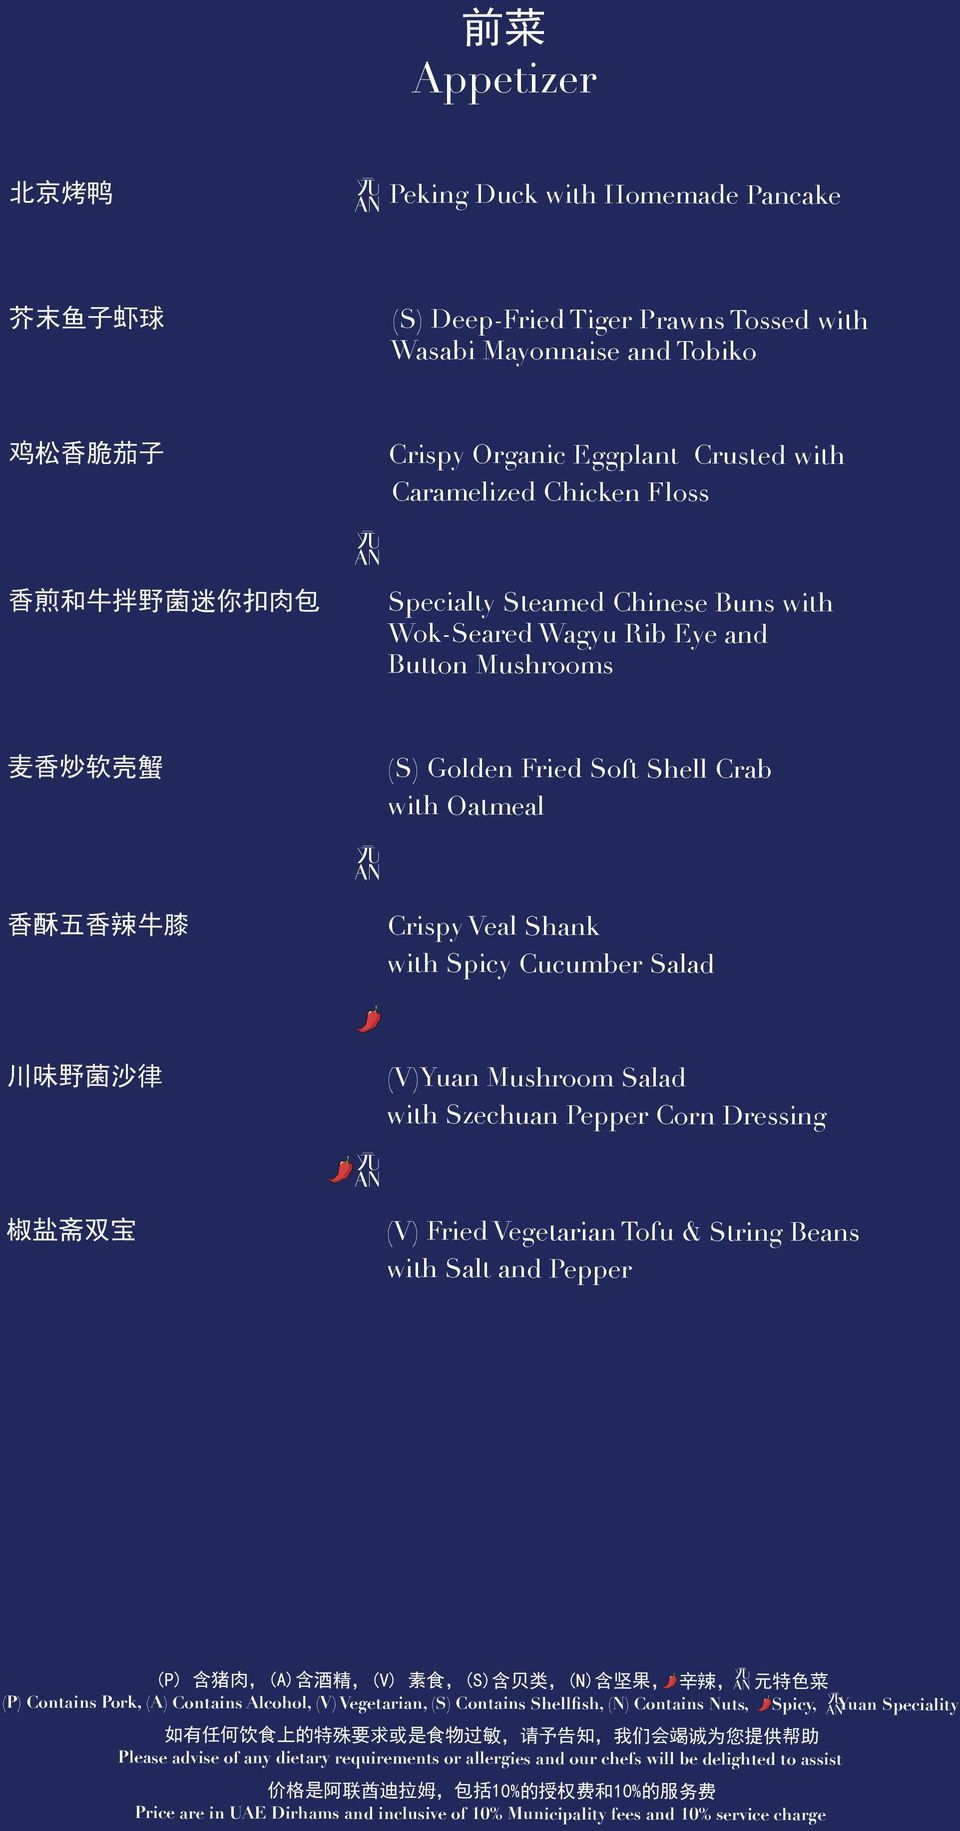 Wagyu Rib Eye and Button Mushrooms 麦 香 炒 软 壳 蟹 (S) Golden Fried Soft Shell Crab with Oatmeal 香 酥 五 香 辣 牛 膝 Crispy Veal Shank with Spicy